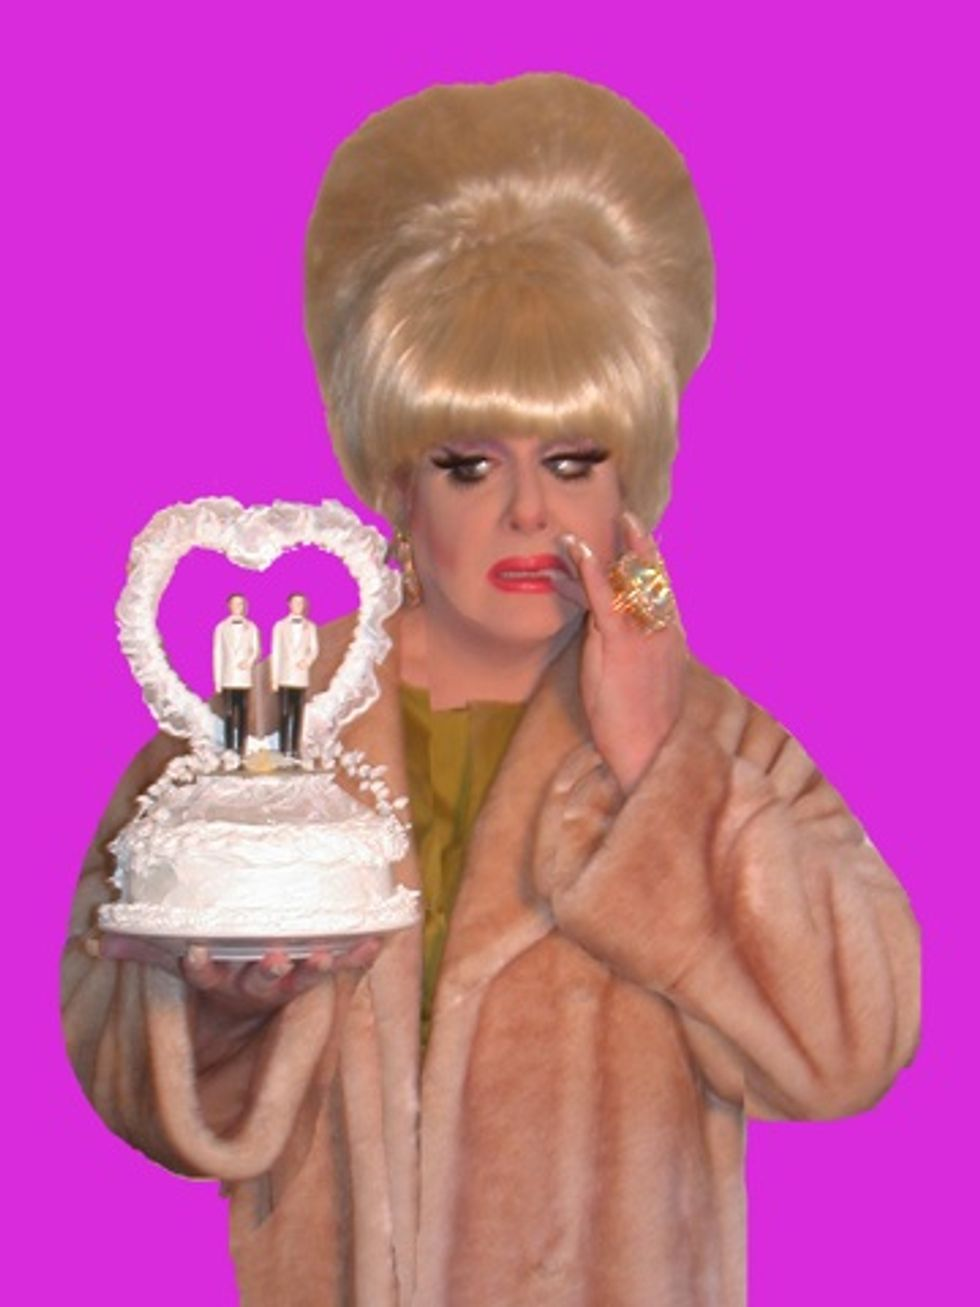 Lady Bunny On Her New Theater Role, Pat Robertson Supporters and John Travolta